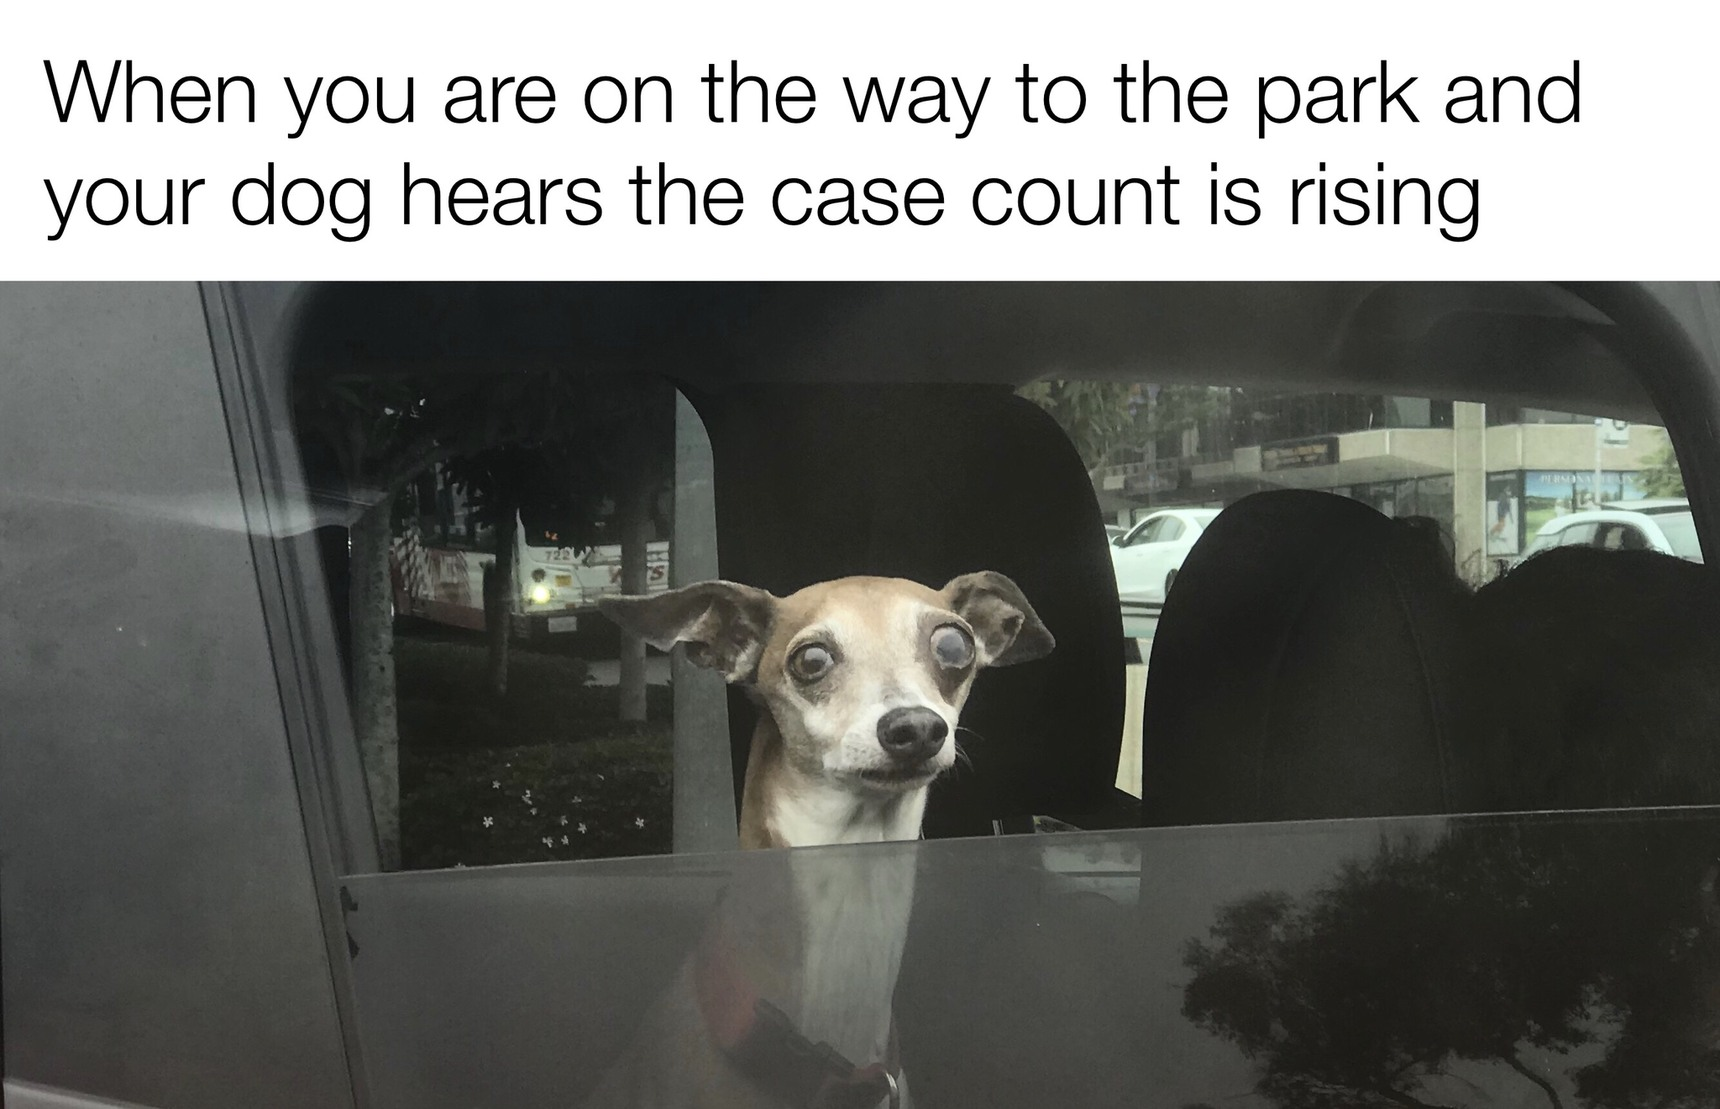 One scared puppy - meme